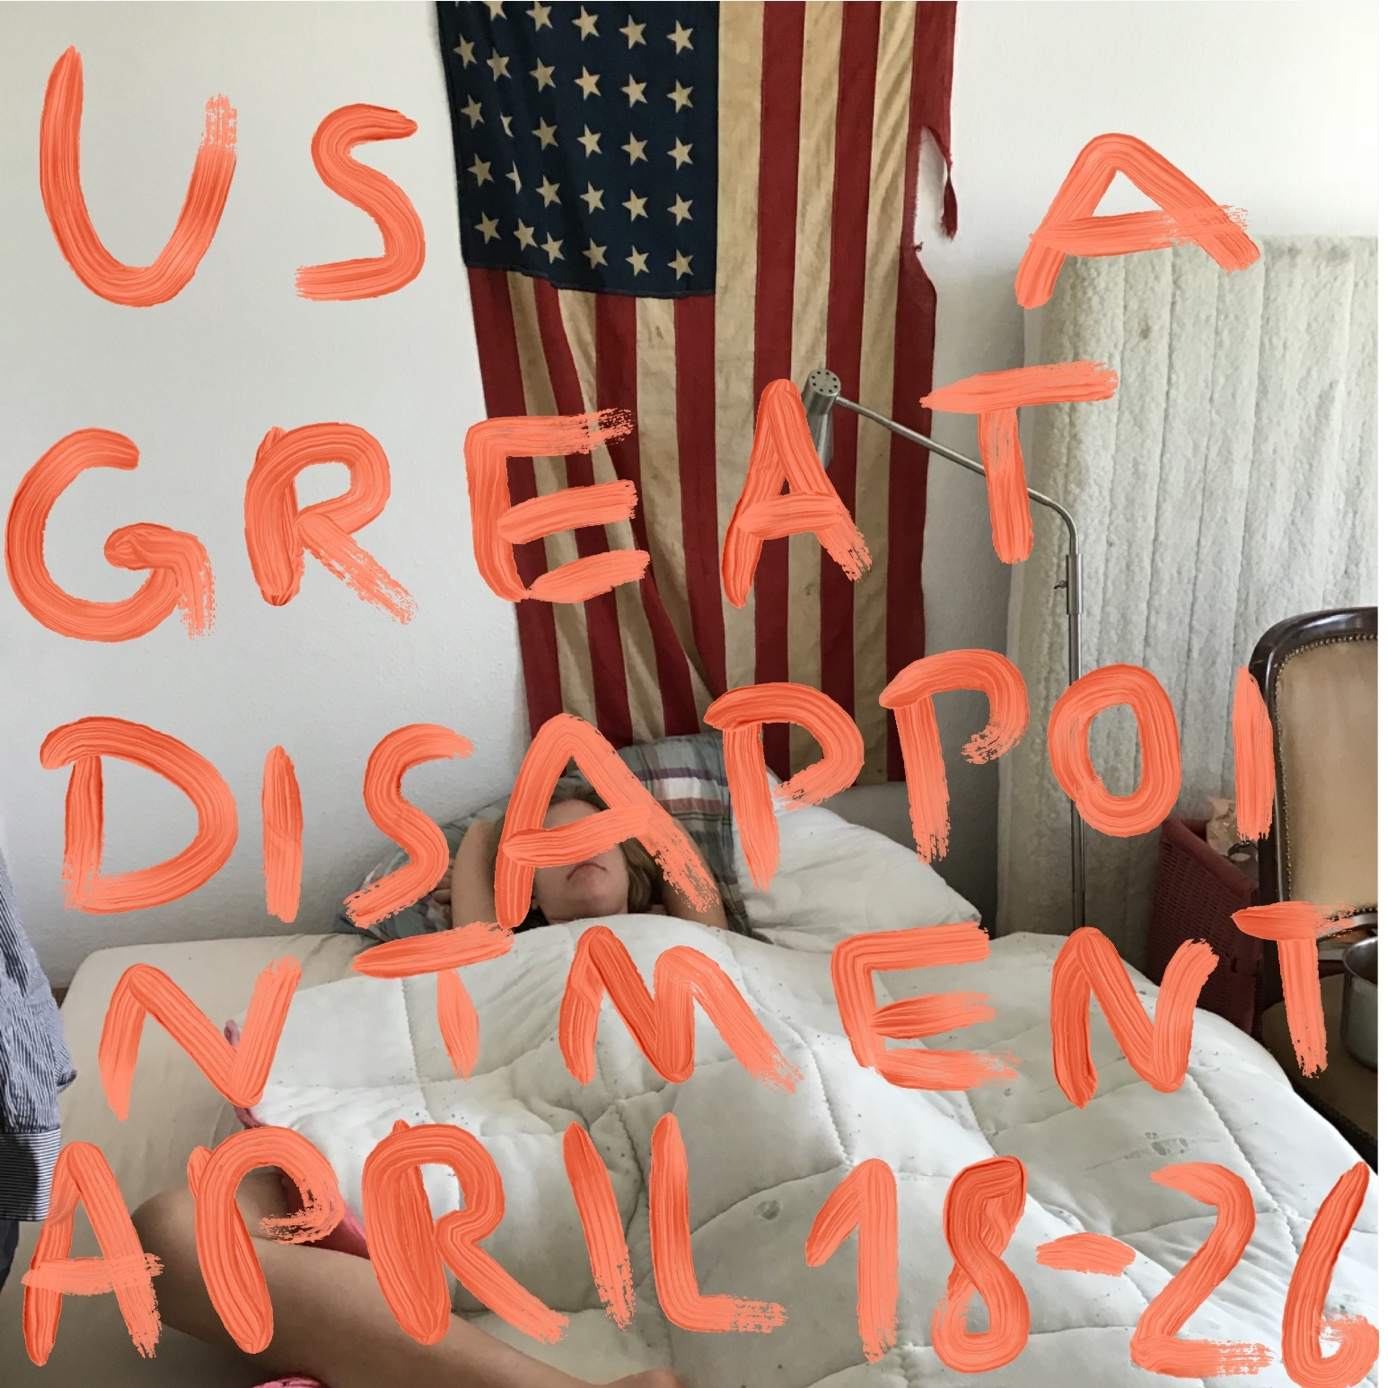 "xpon-art ""us a great disappointment"""